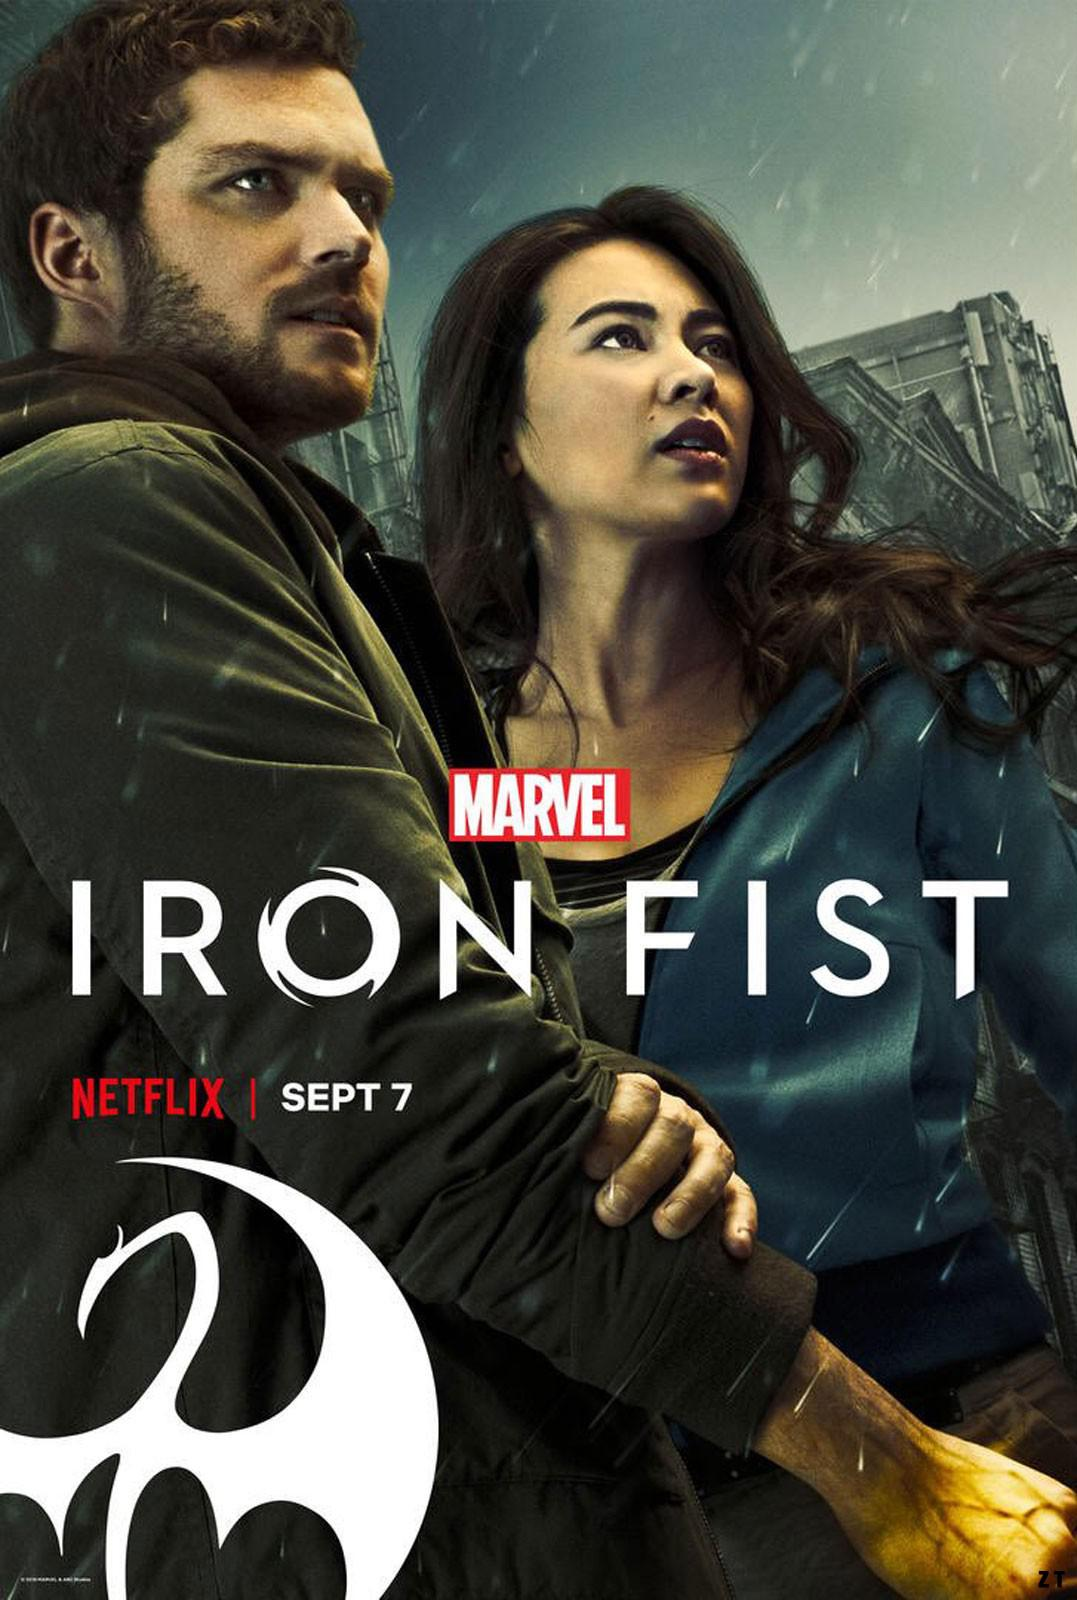 Telecharger Marvel's Iron Fist- Saison 2 [COMPLETE] [10/10] FRENCH | Qualité Web-DL